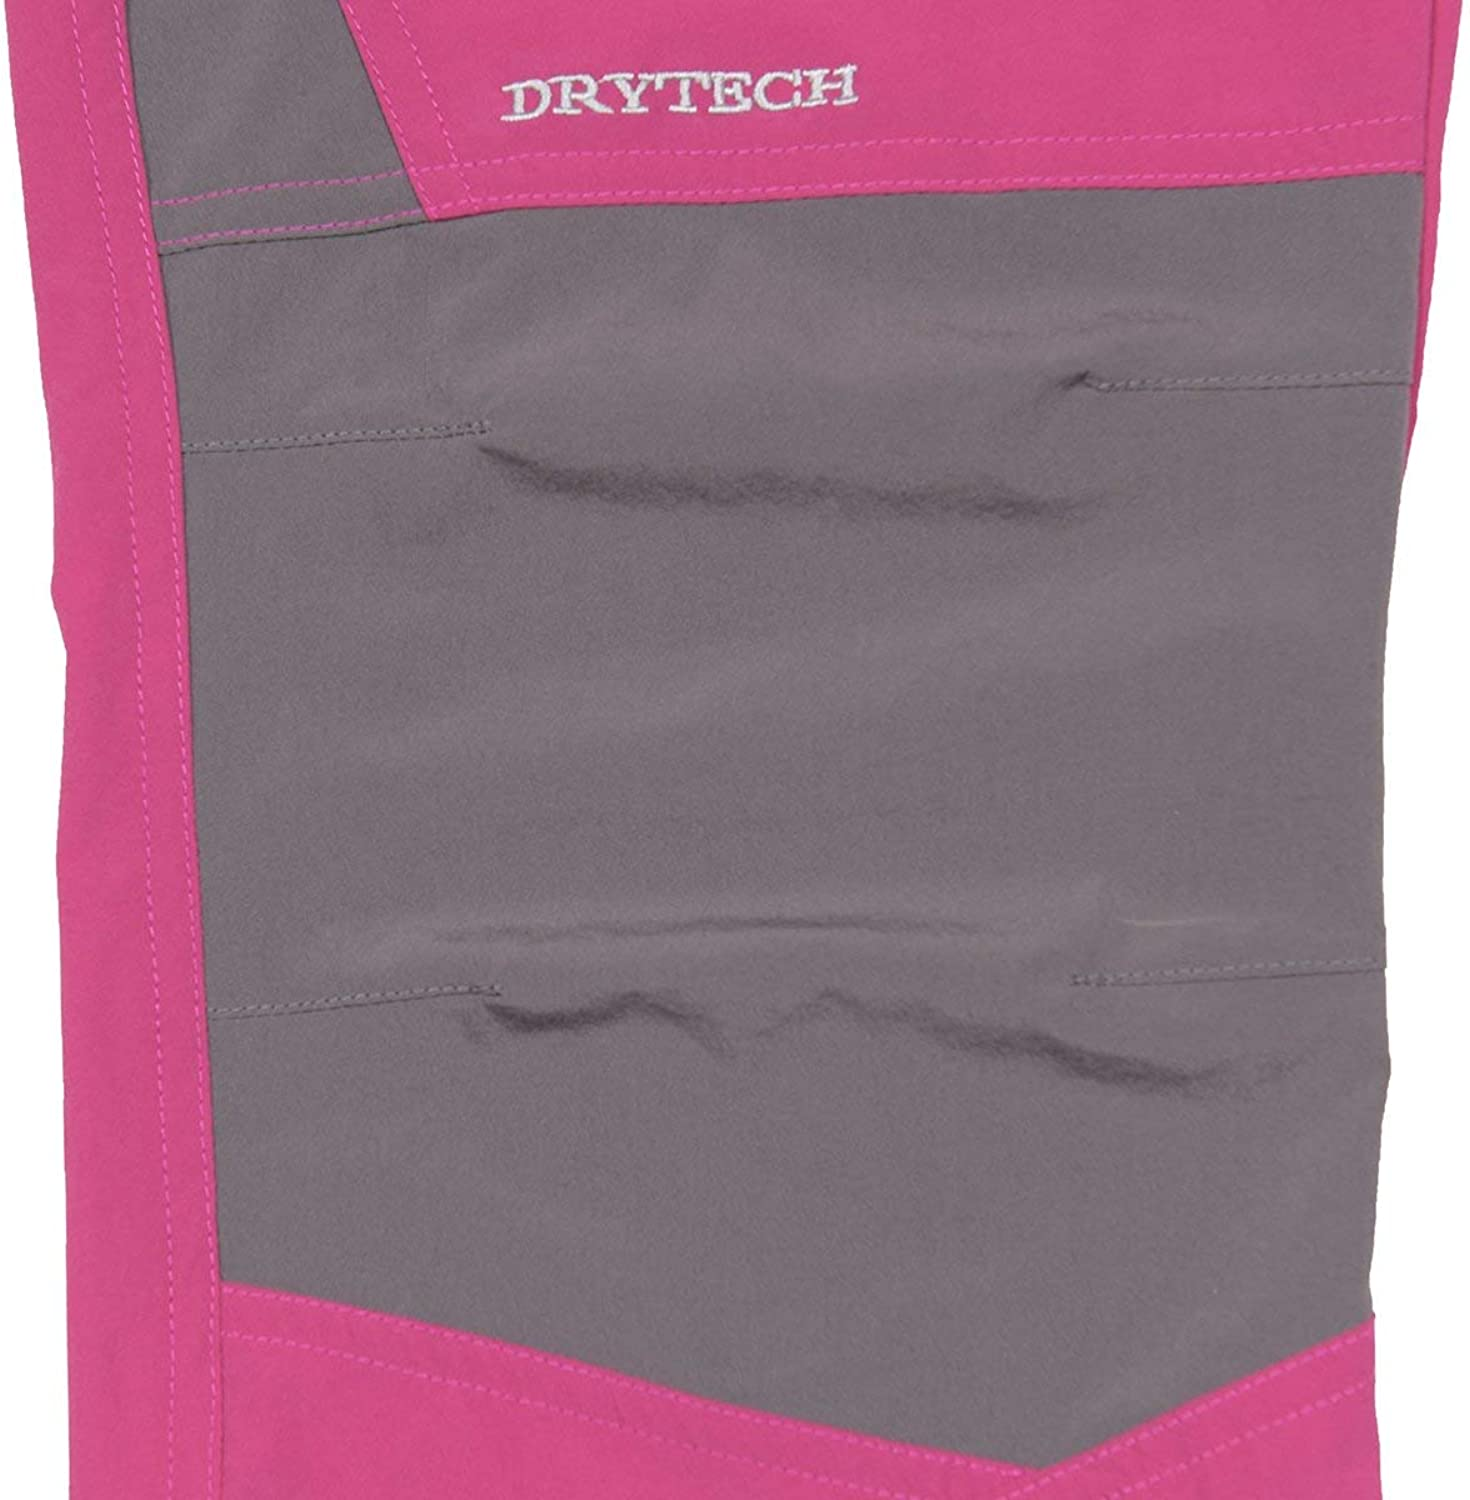 Little Donkey Andy Youth Girls Lightweight Quick-Dry Pants for Hiking Camping Travel